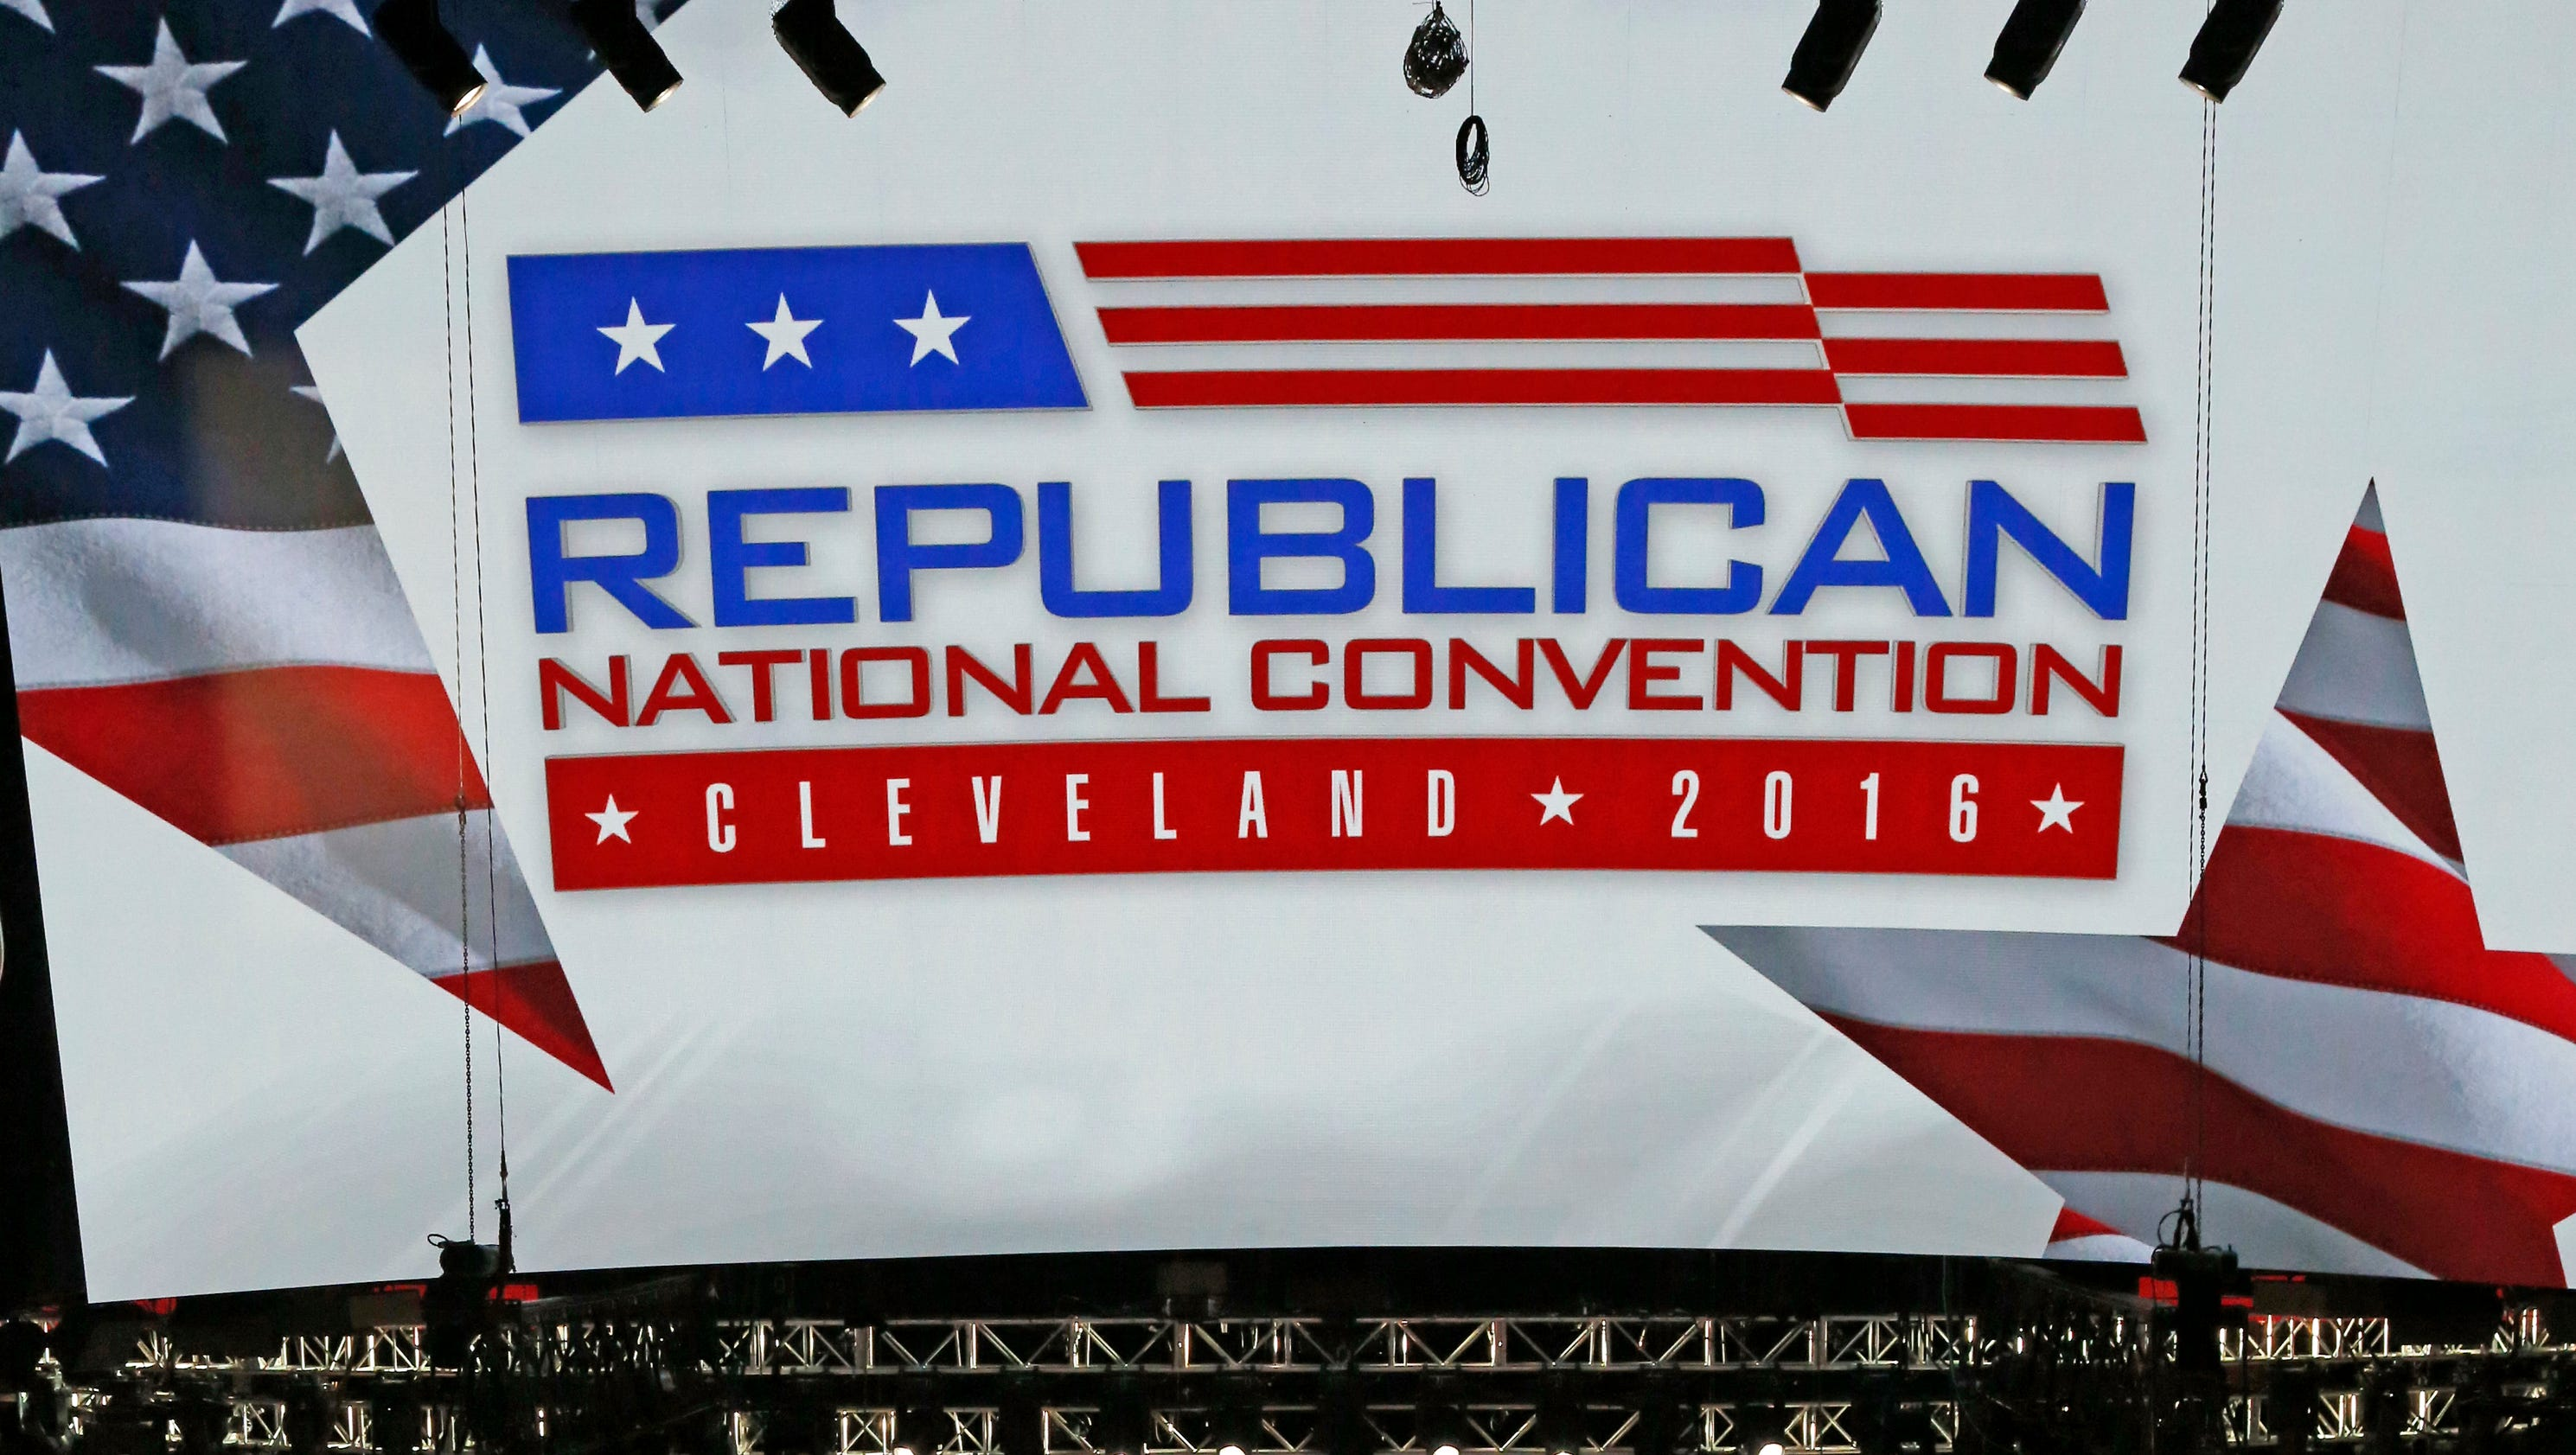 national poll after gop convention Rasmussen reports - the best place to look for polls that are spot on  after the  chaotic and controversial 1968 democratic national convention,  been easier  to use the final delegate support votes at the gop conventions.